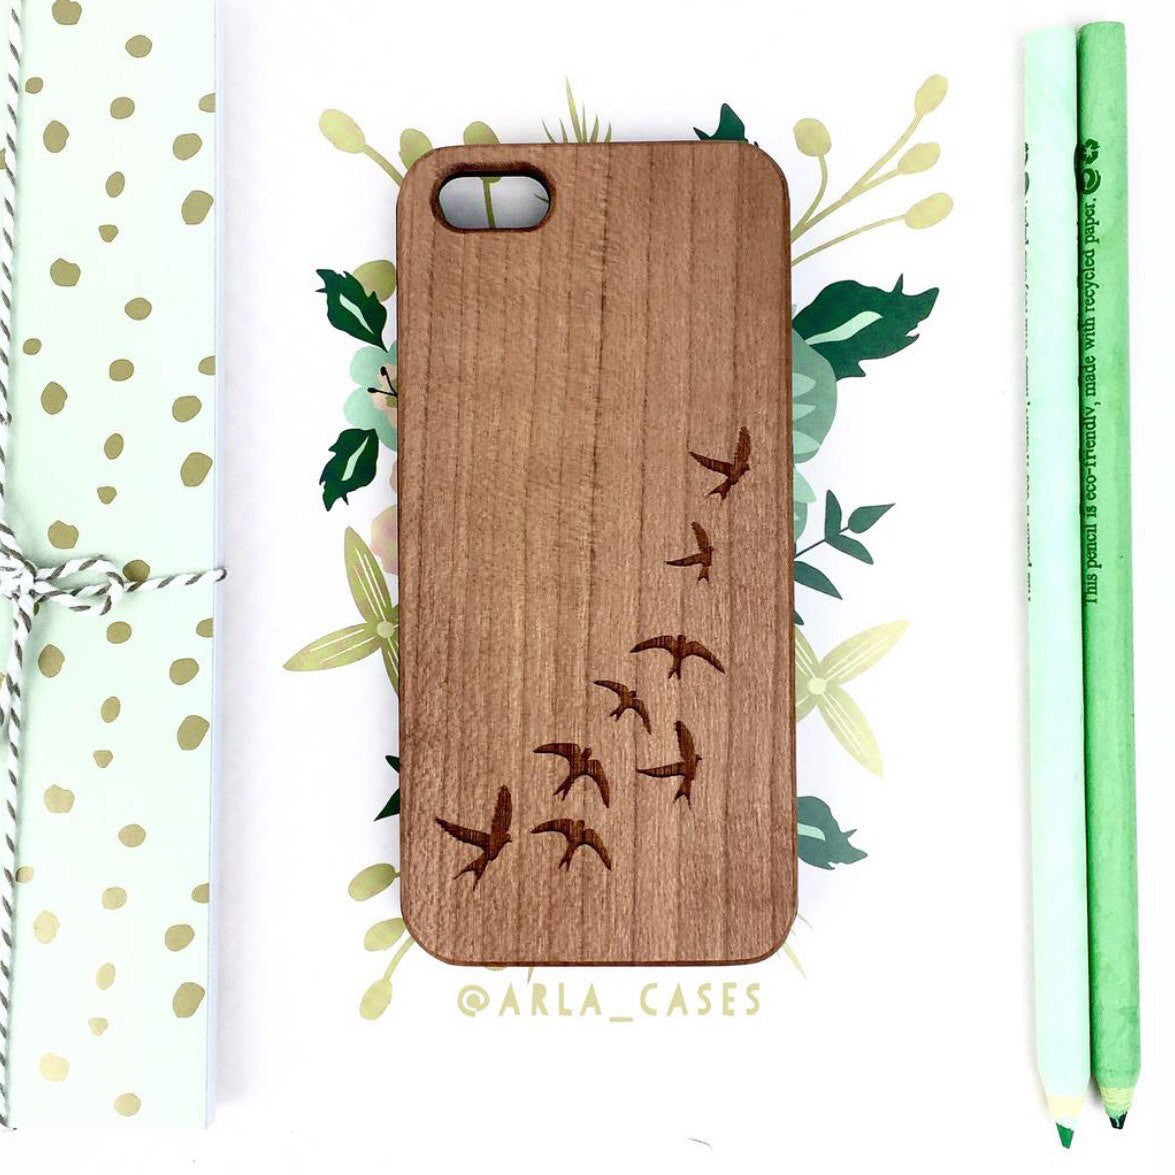 Sparrow Birds in Flight Wood Phone Case